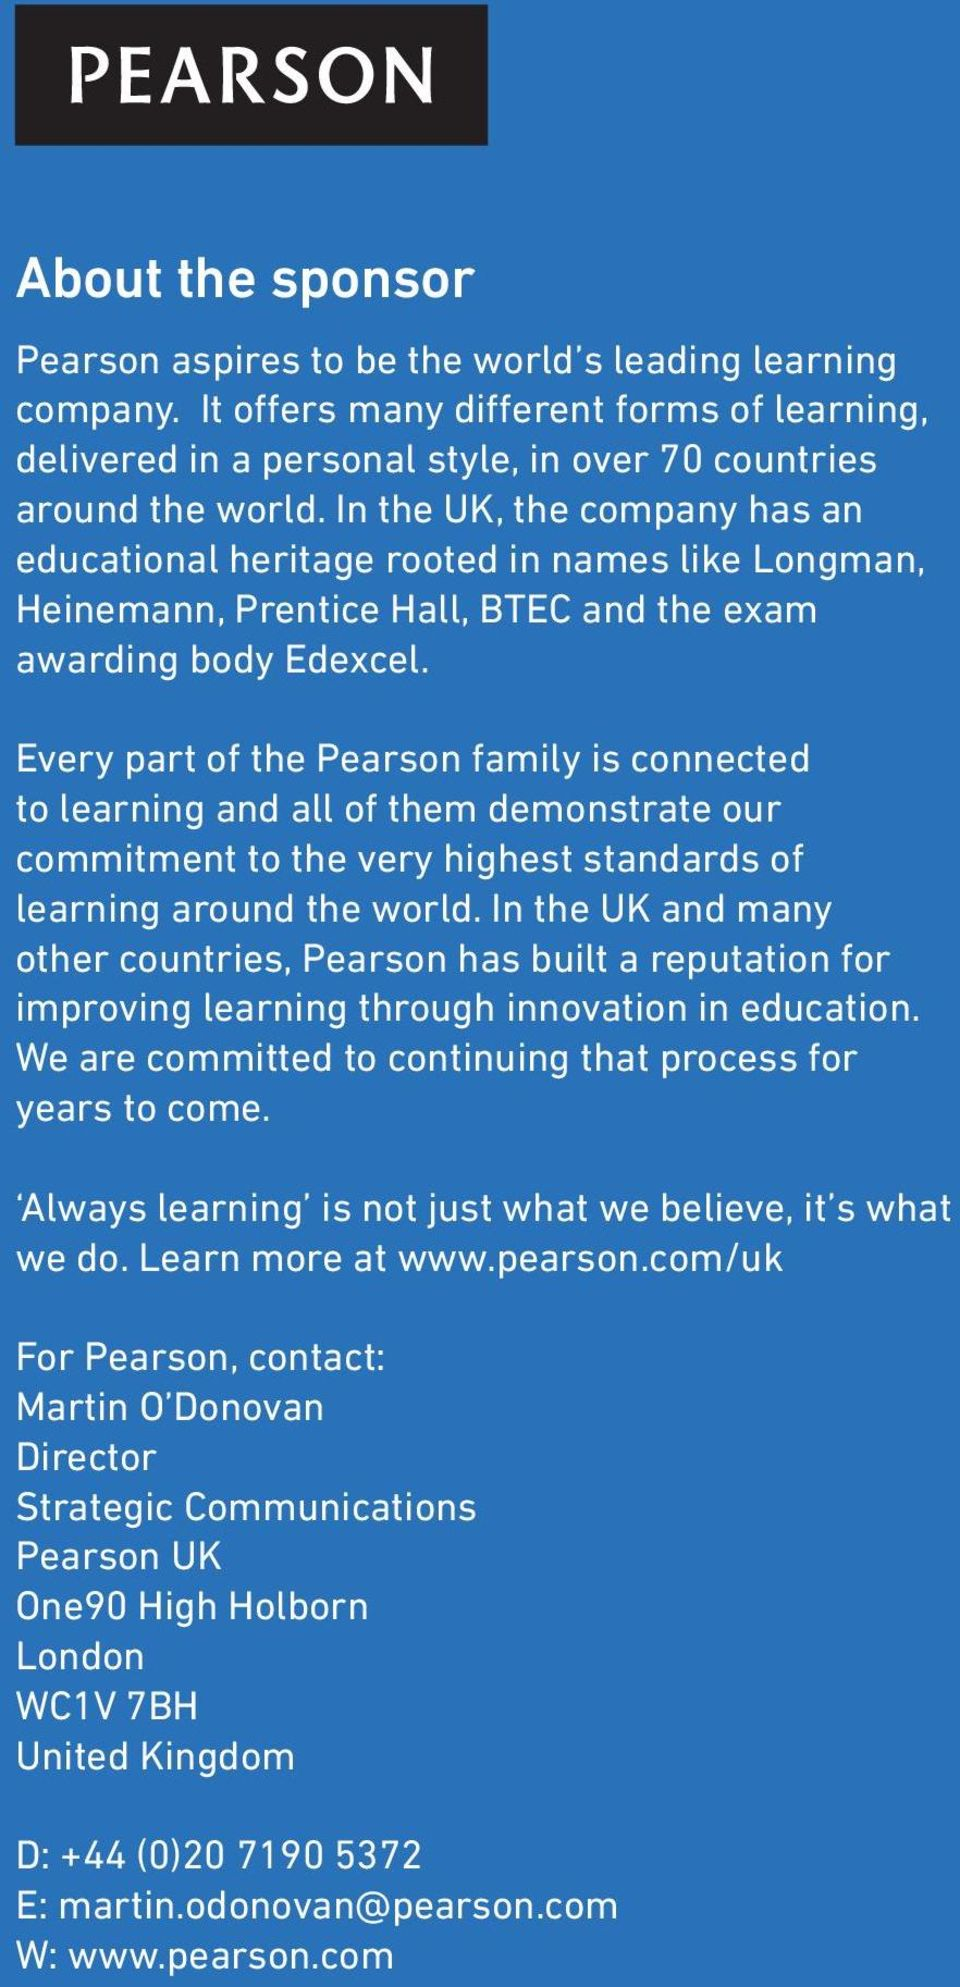 Every part of the Pearson family is connected to learning and all of them demonstrate our commitment to the very highest standards of learning around the world.